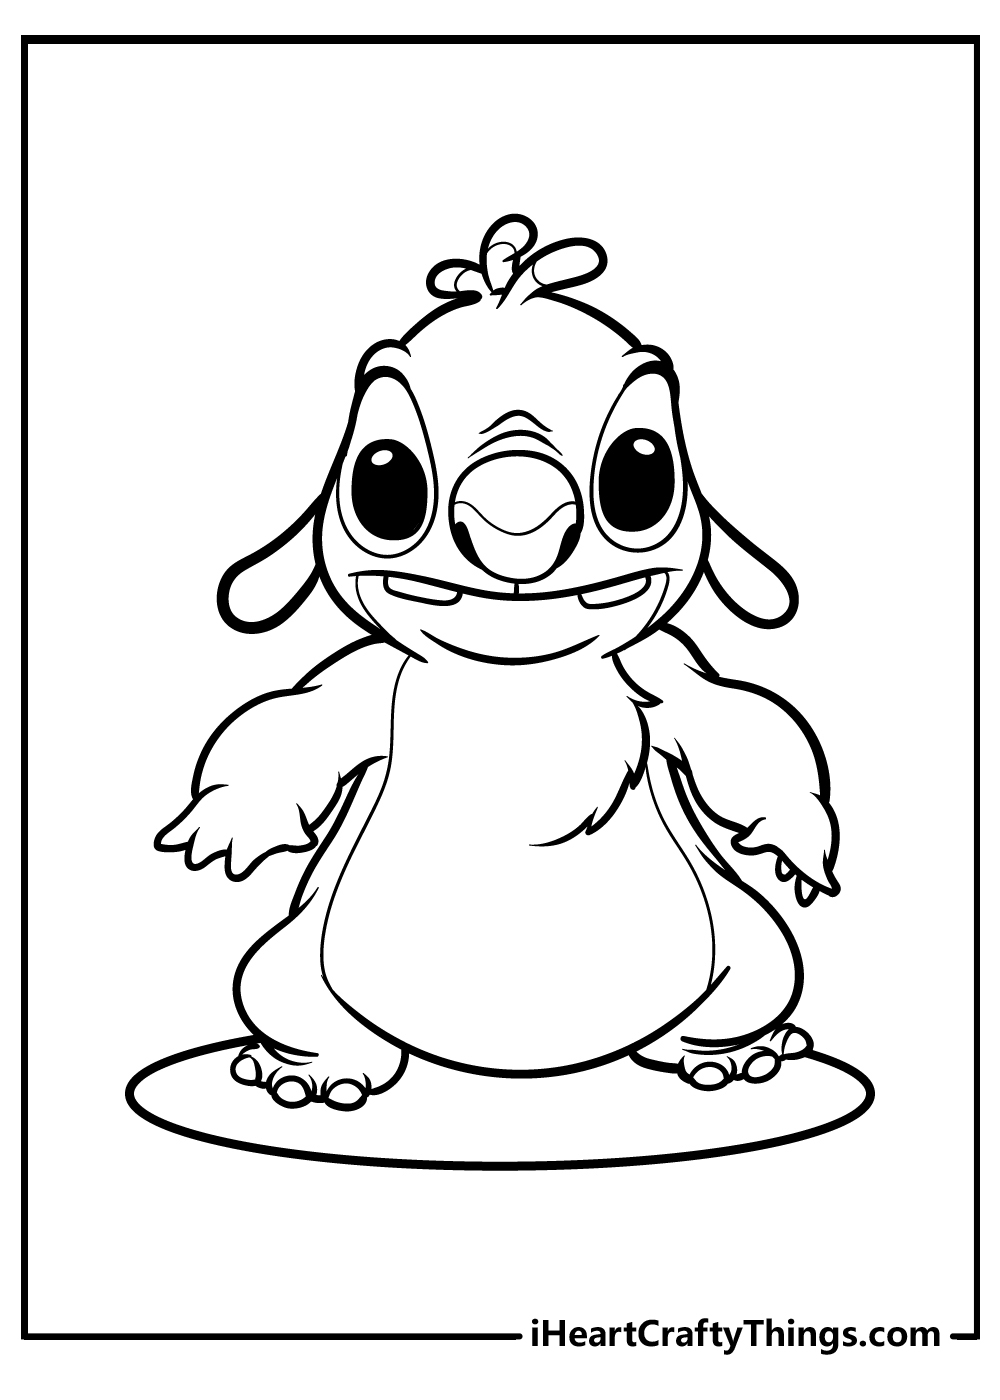 stitch colouring pages free printable